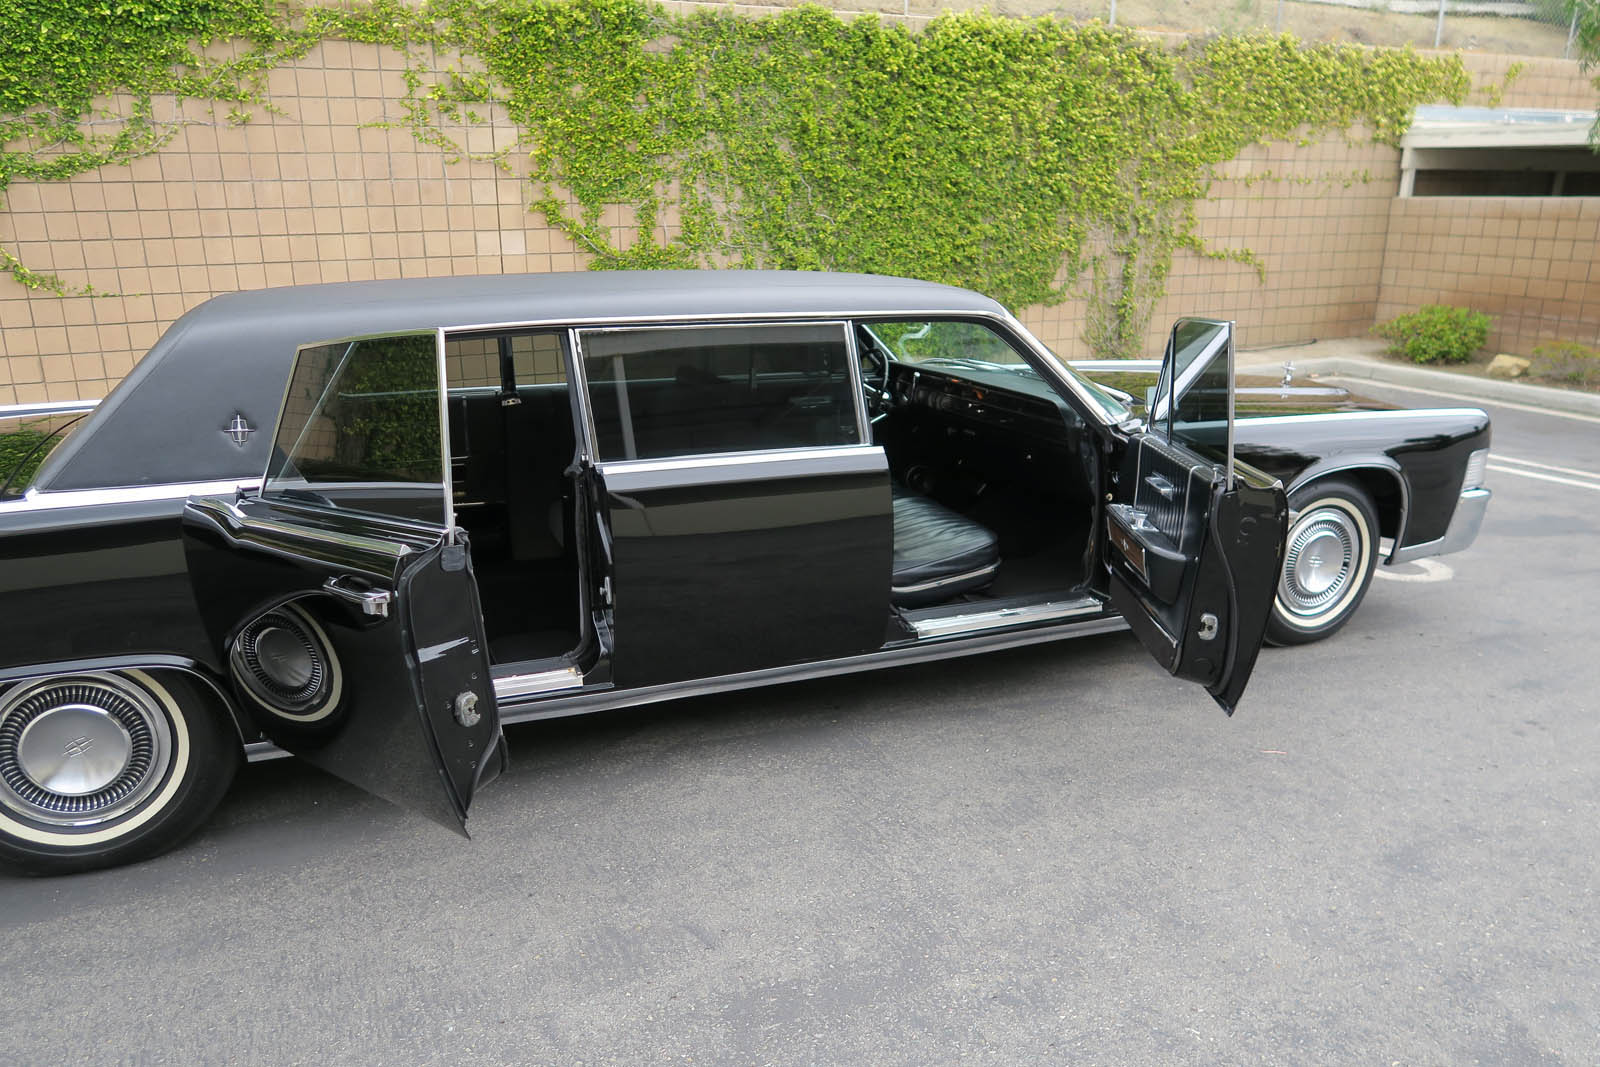 1965-lincoln-continental-limo-mcqueen-08.jpg